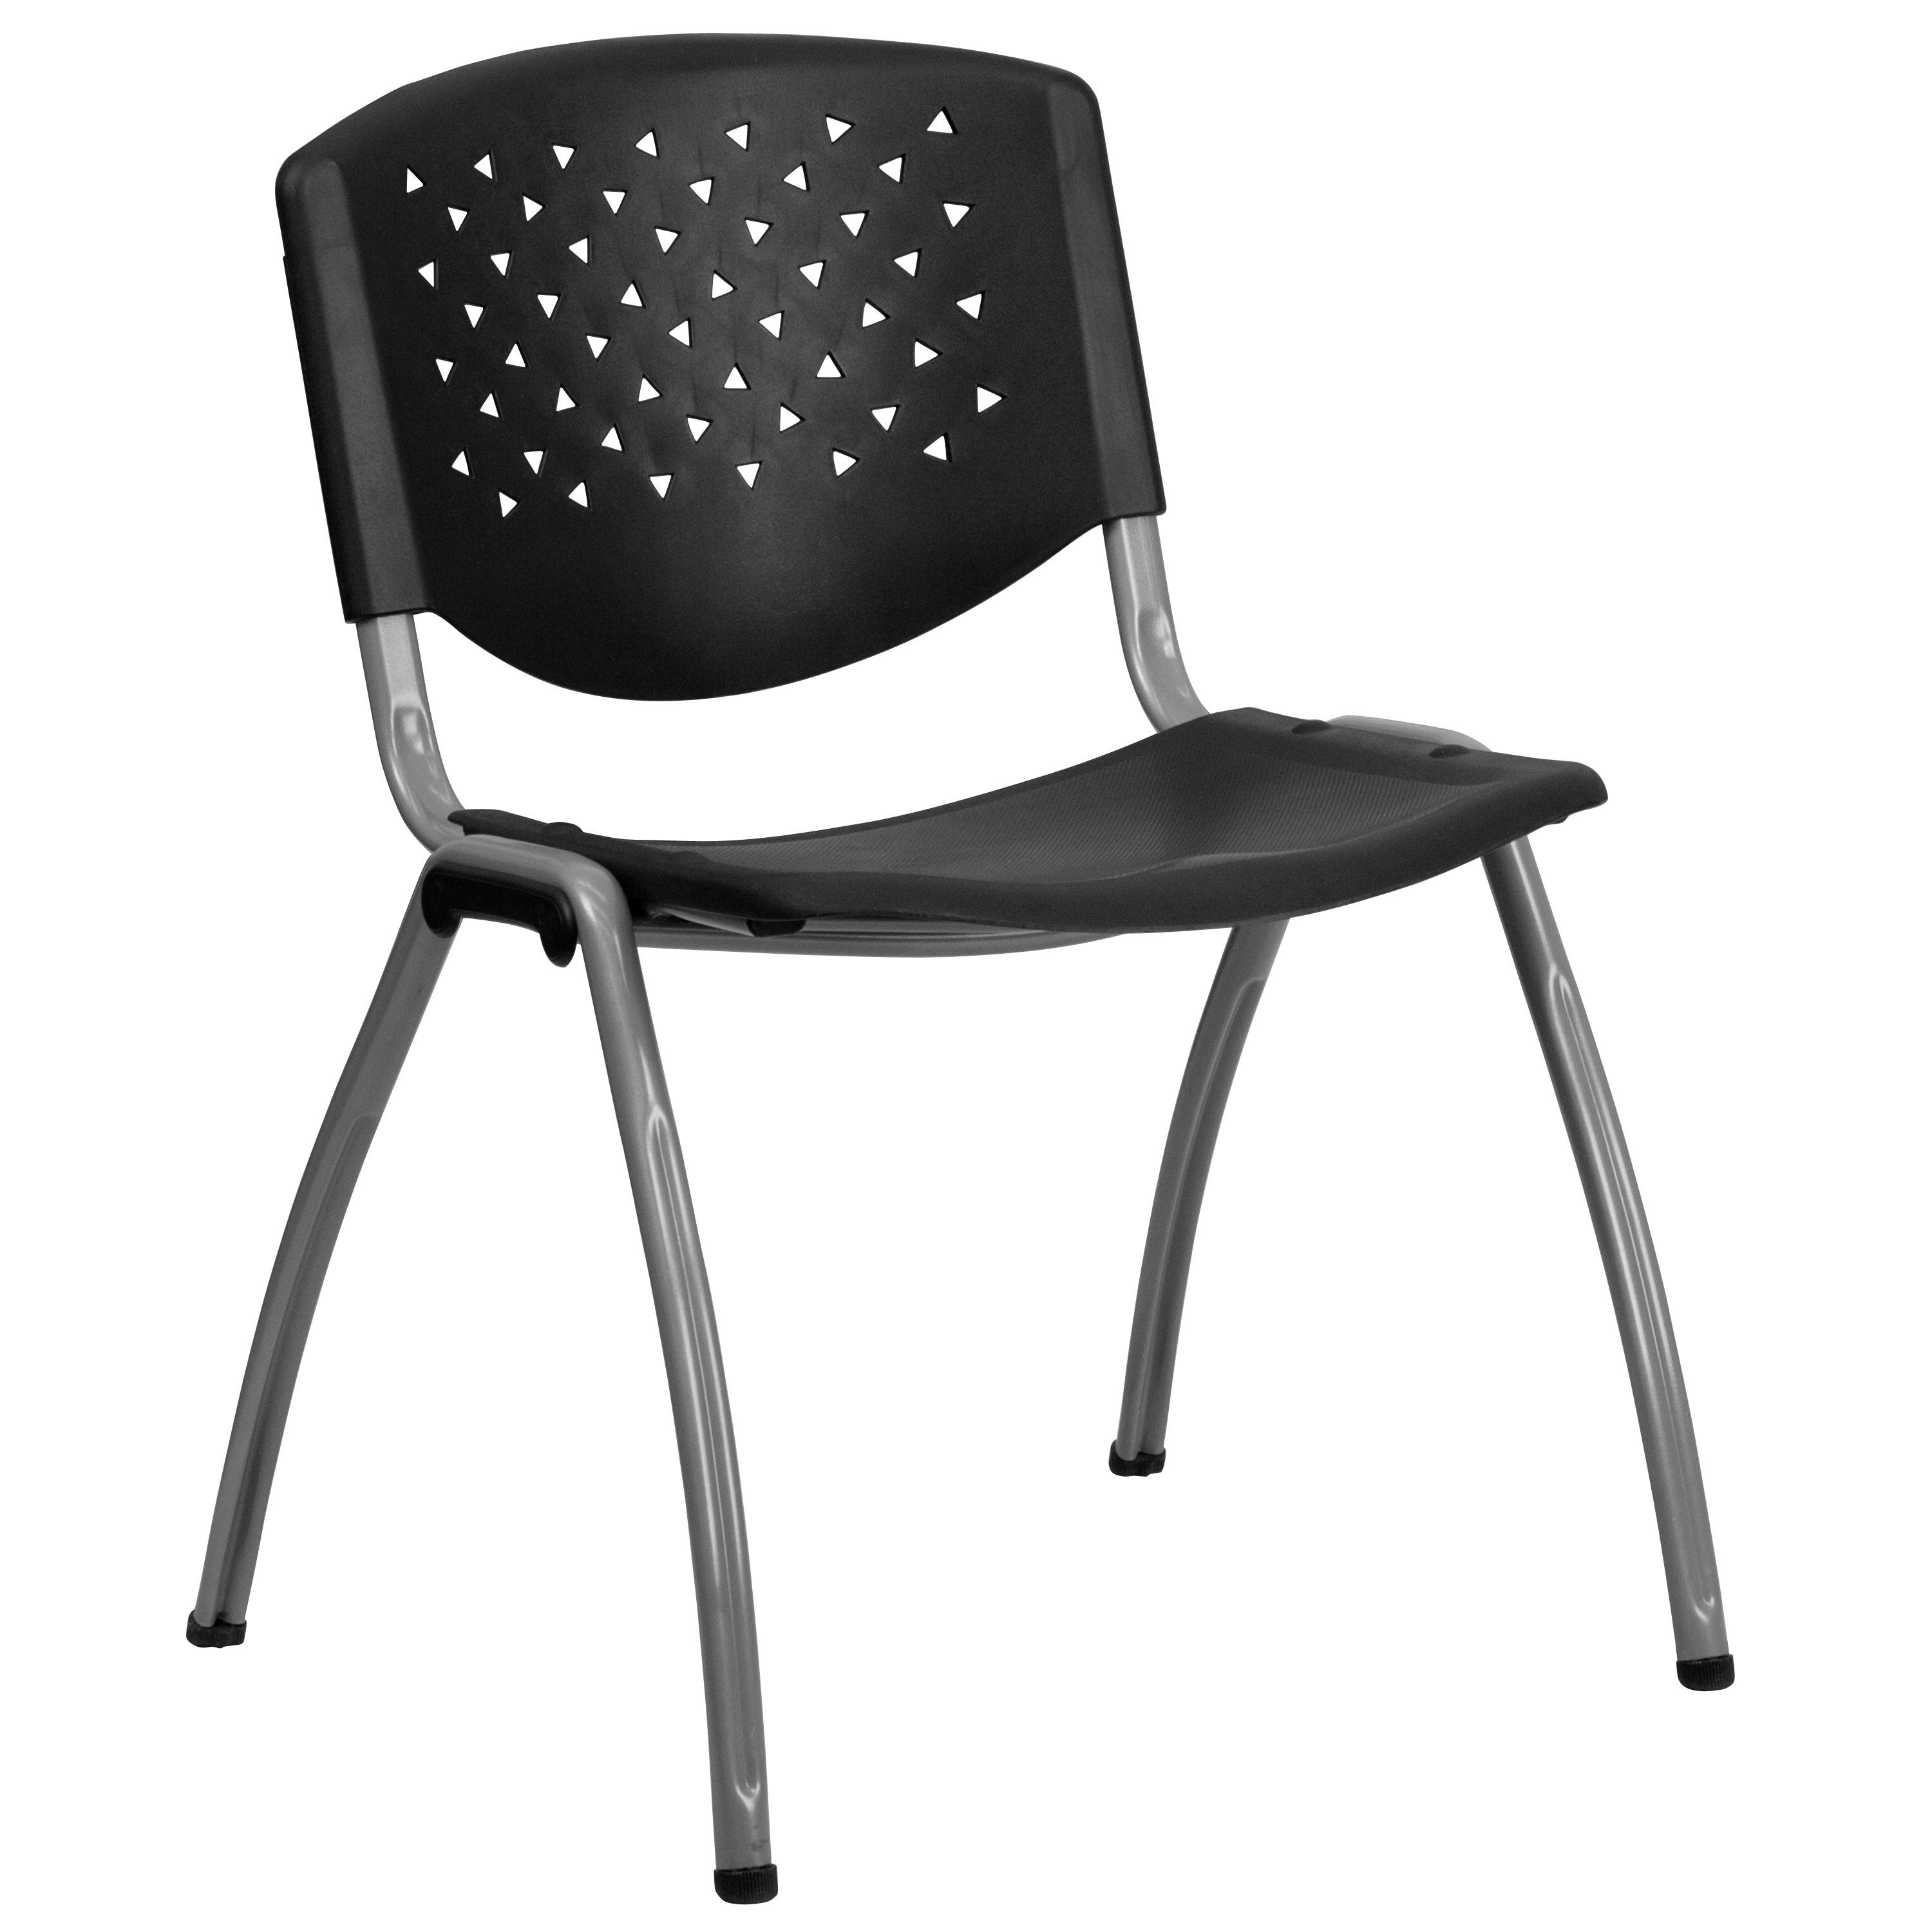 Impact Resistant Black Polypropylene Stack Chair with Titanium Frame Finish